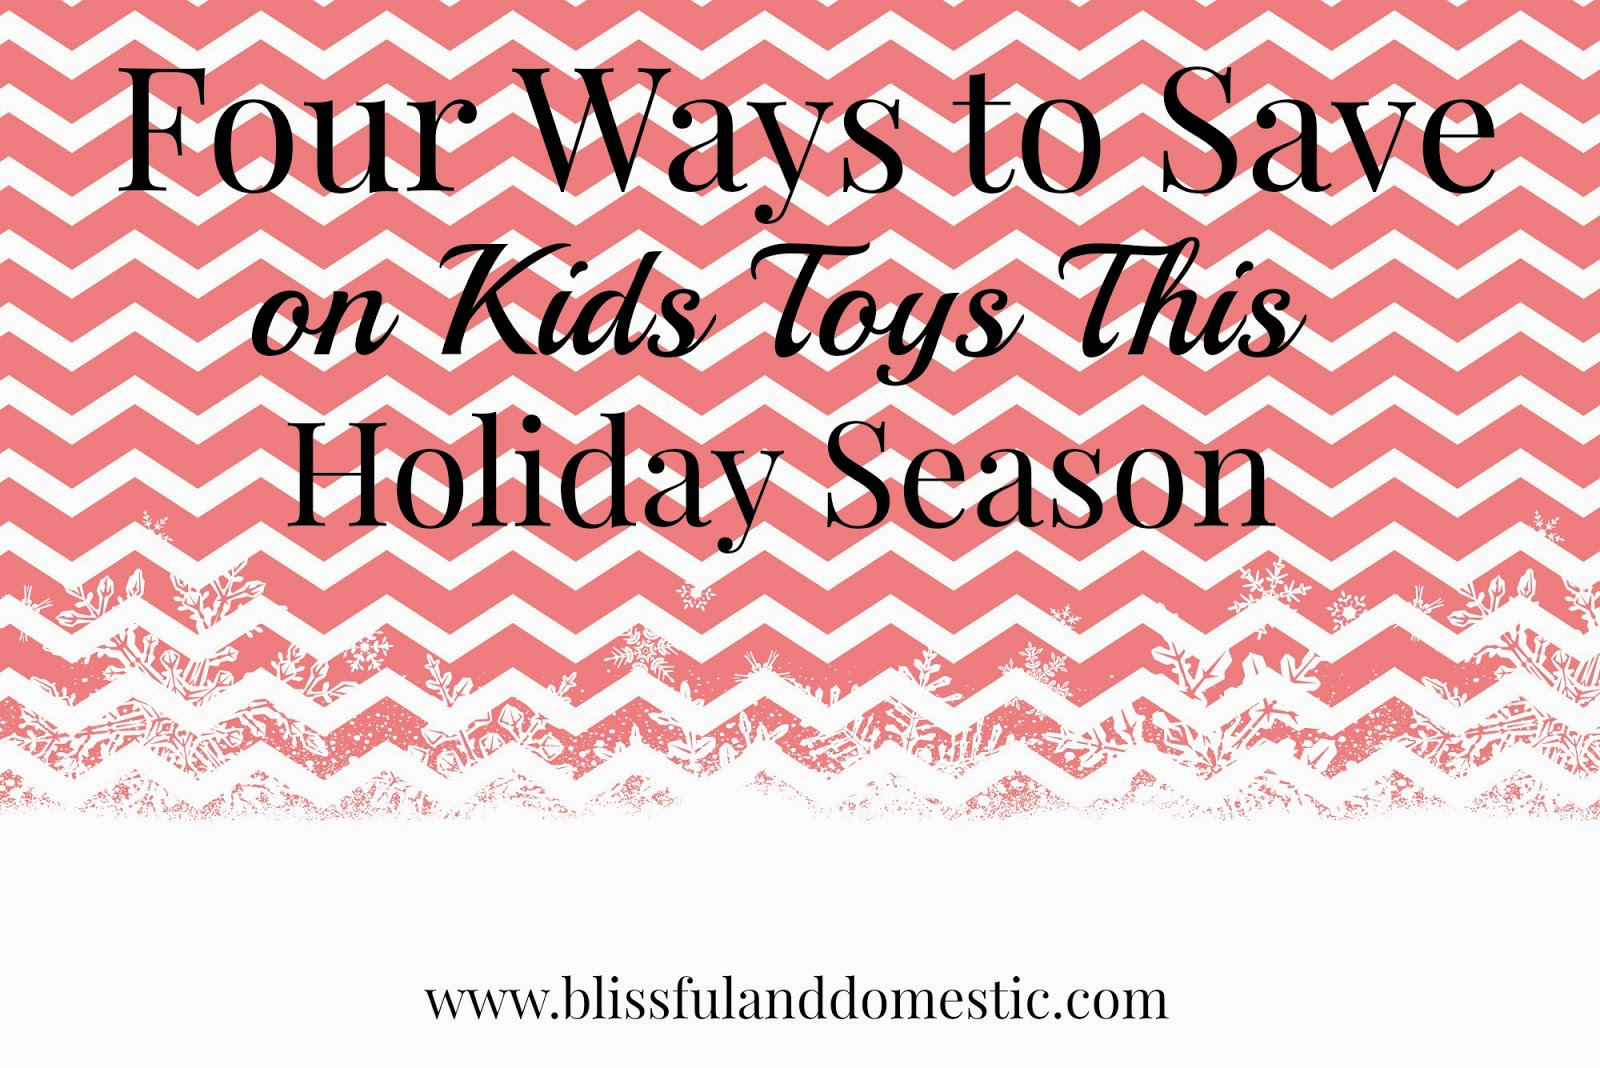 Four Ways to Save on Kids Toys This Holiday Season